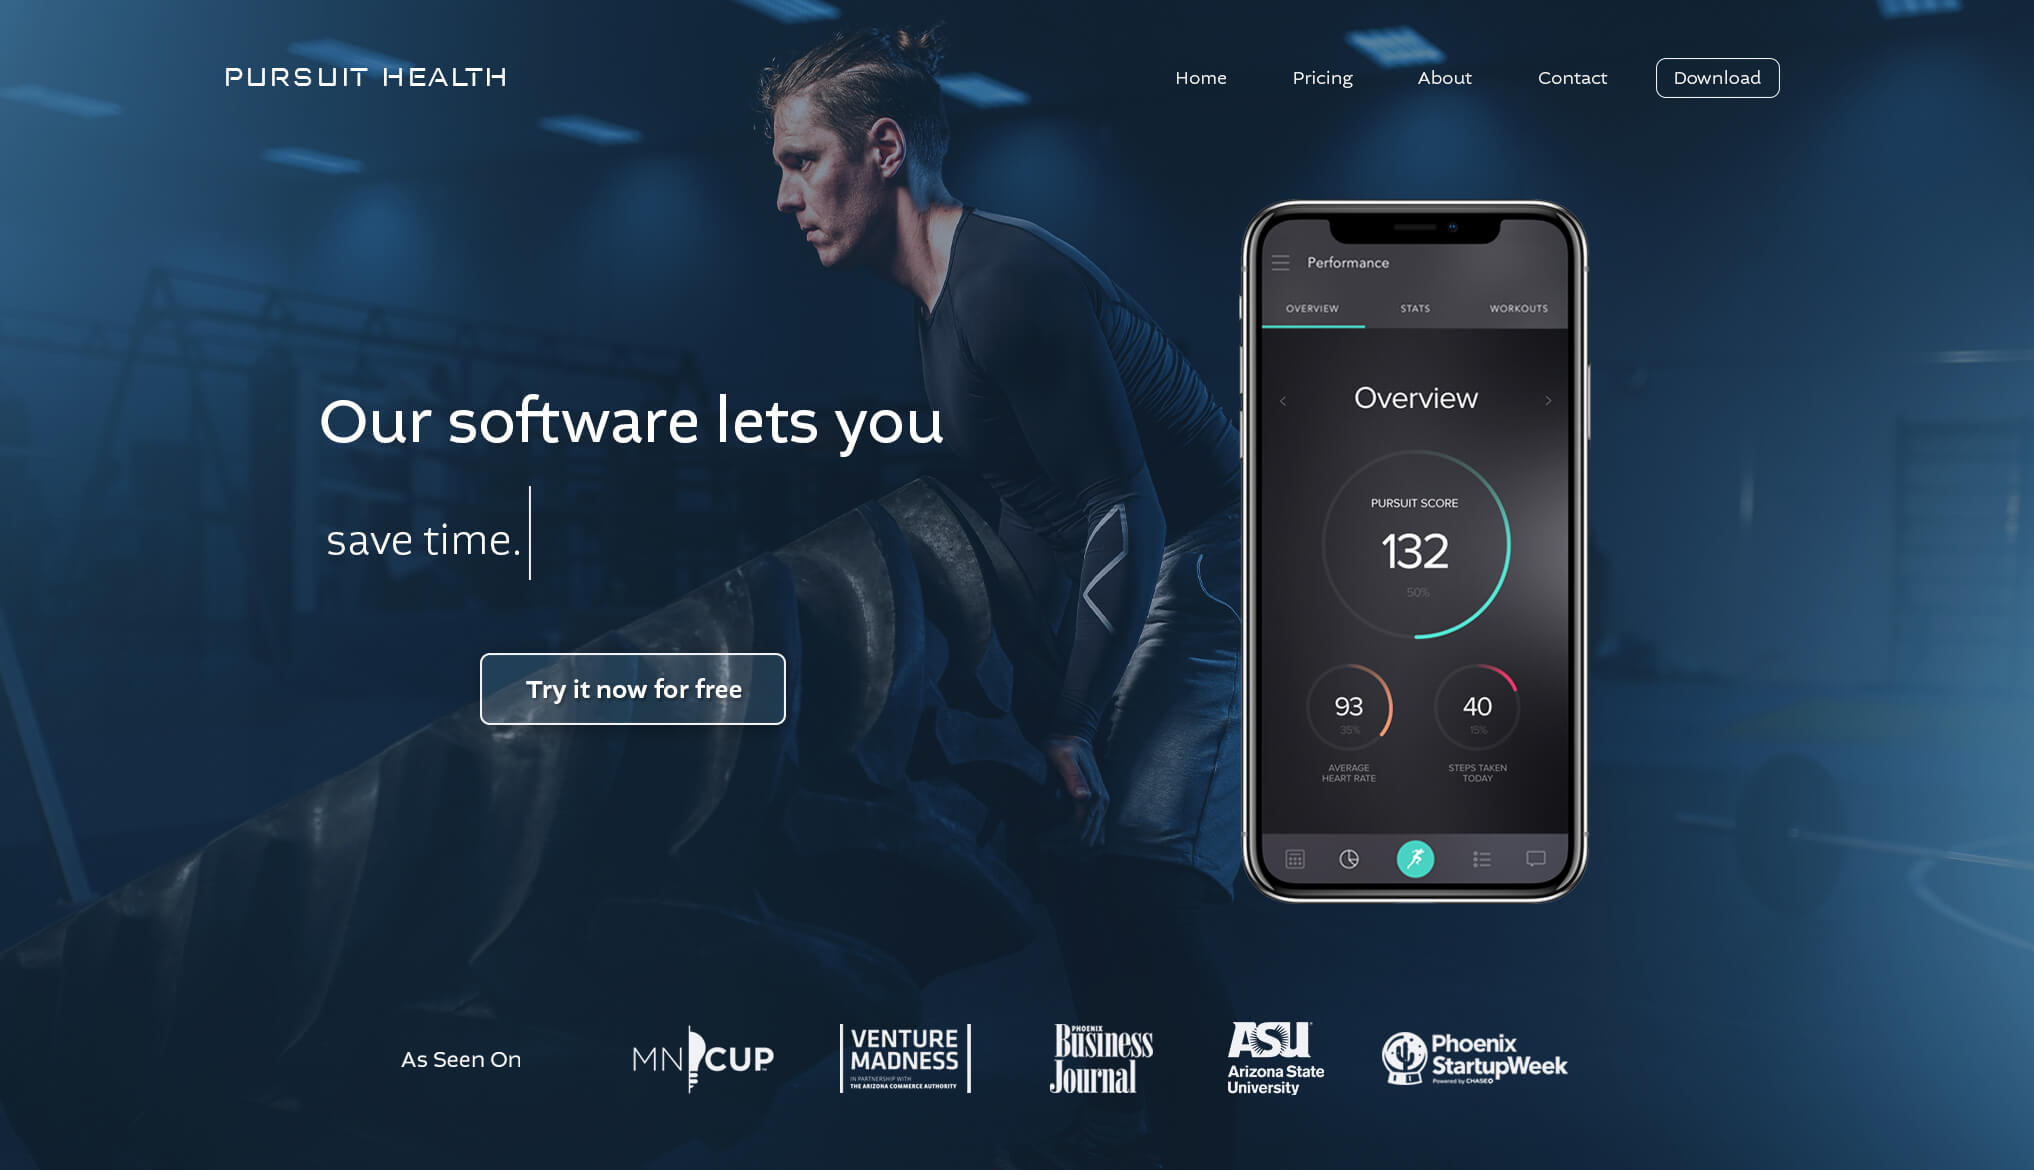 Landing page design - AI-powered fitness application for personal trainers - Pursuit Health tech startup